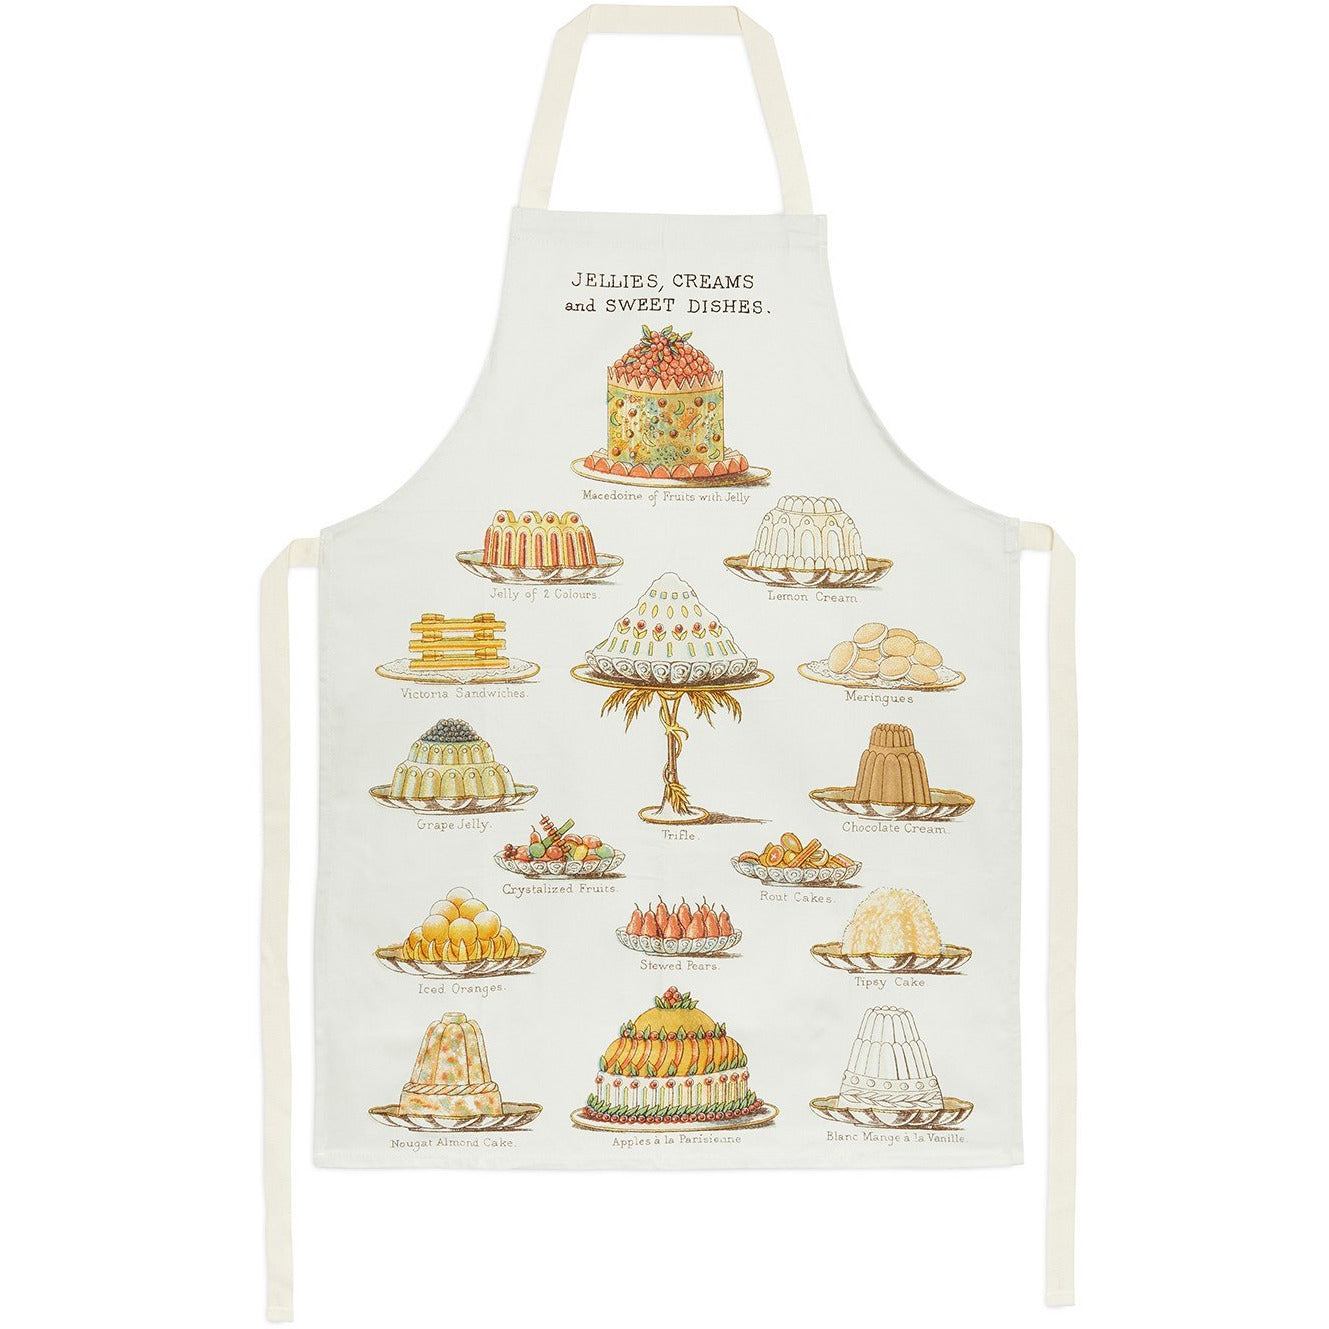 Featured image for the project: Mrs Beeton's Book of Household Management - Apron